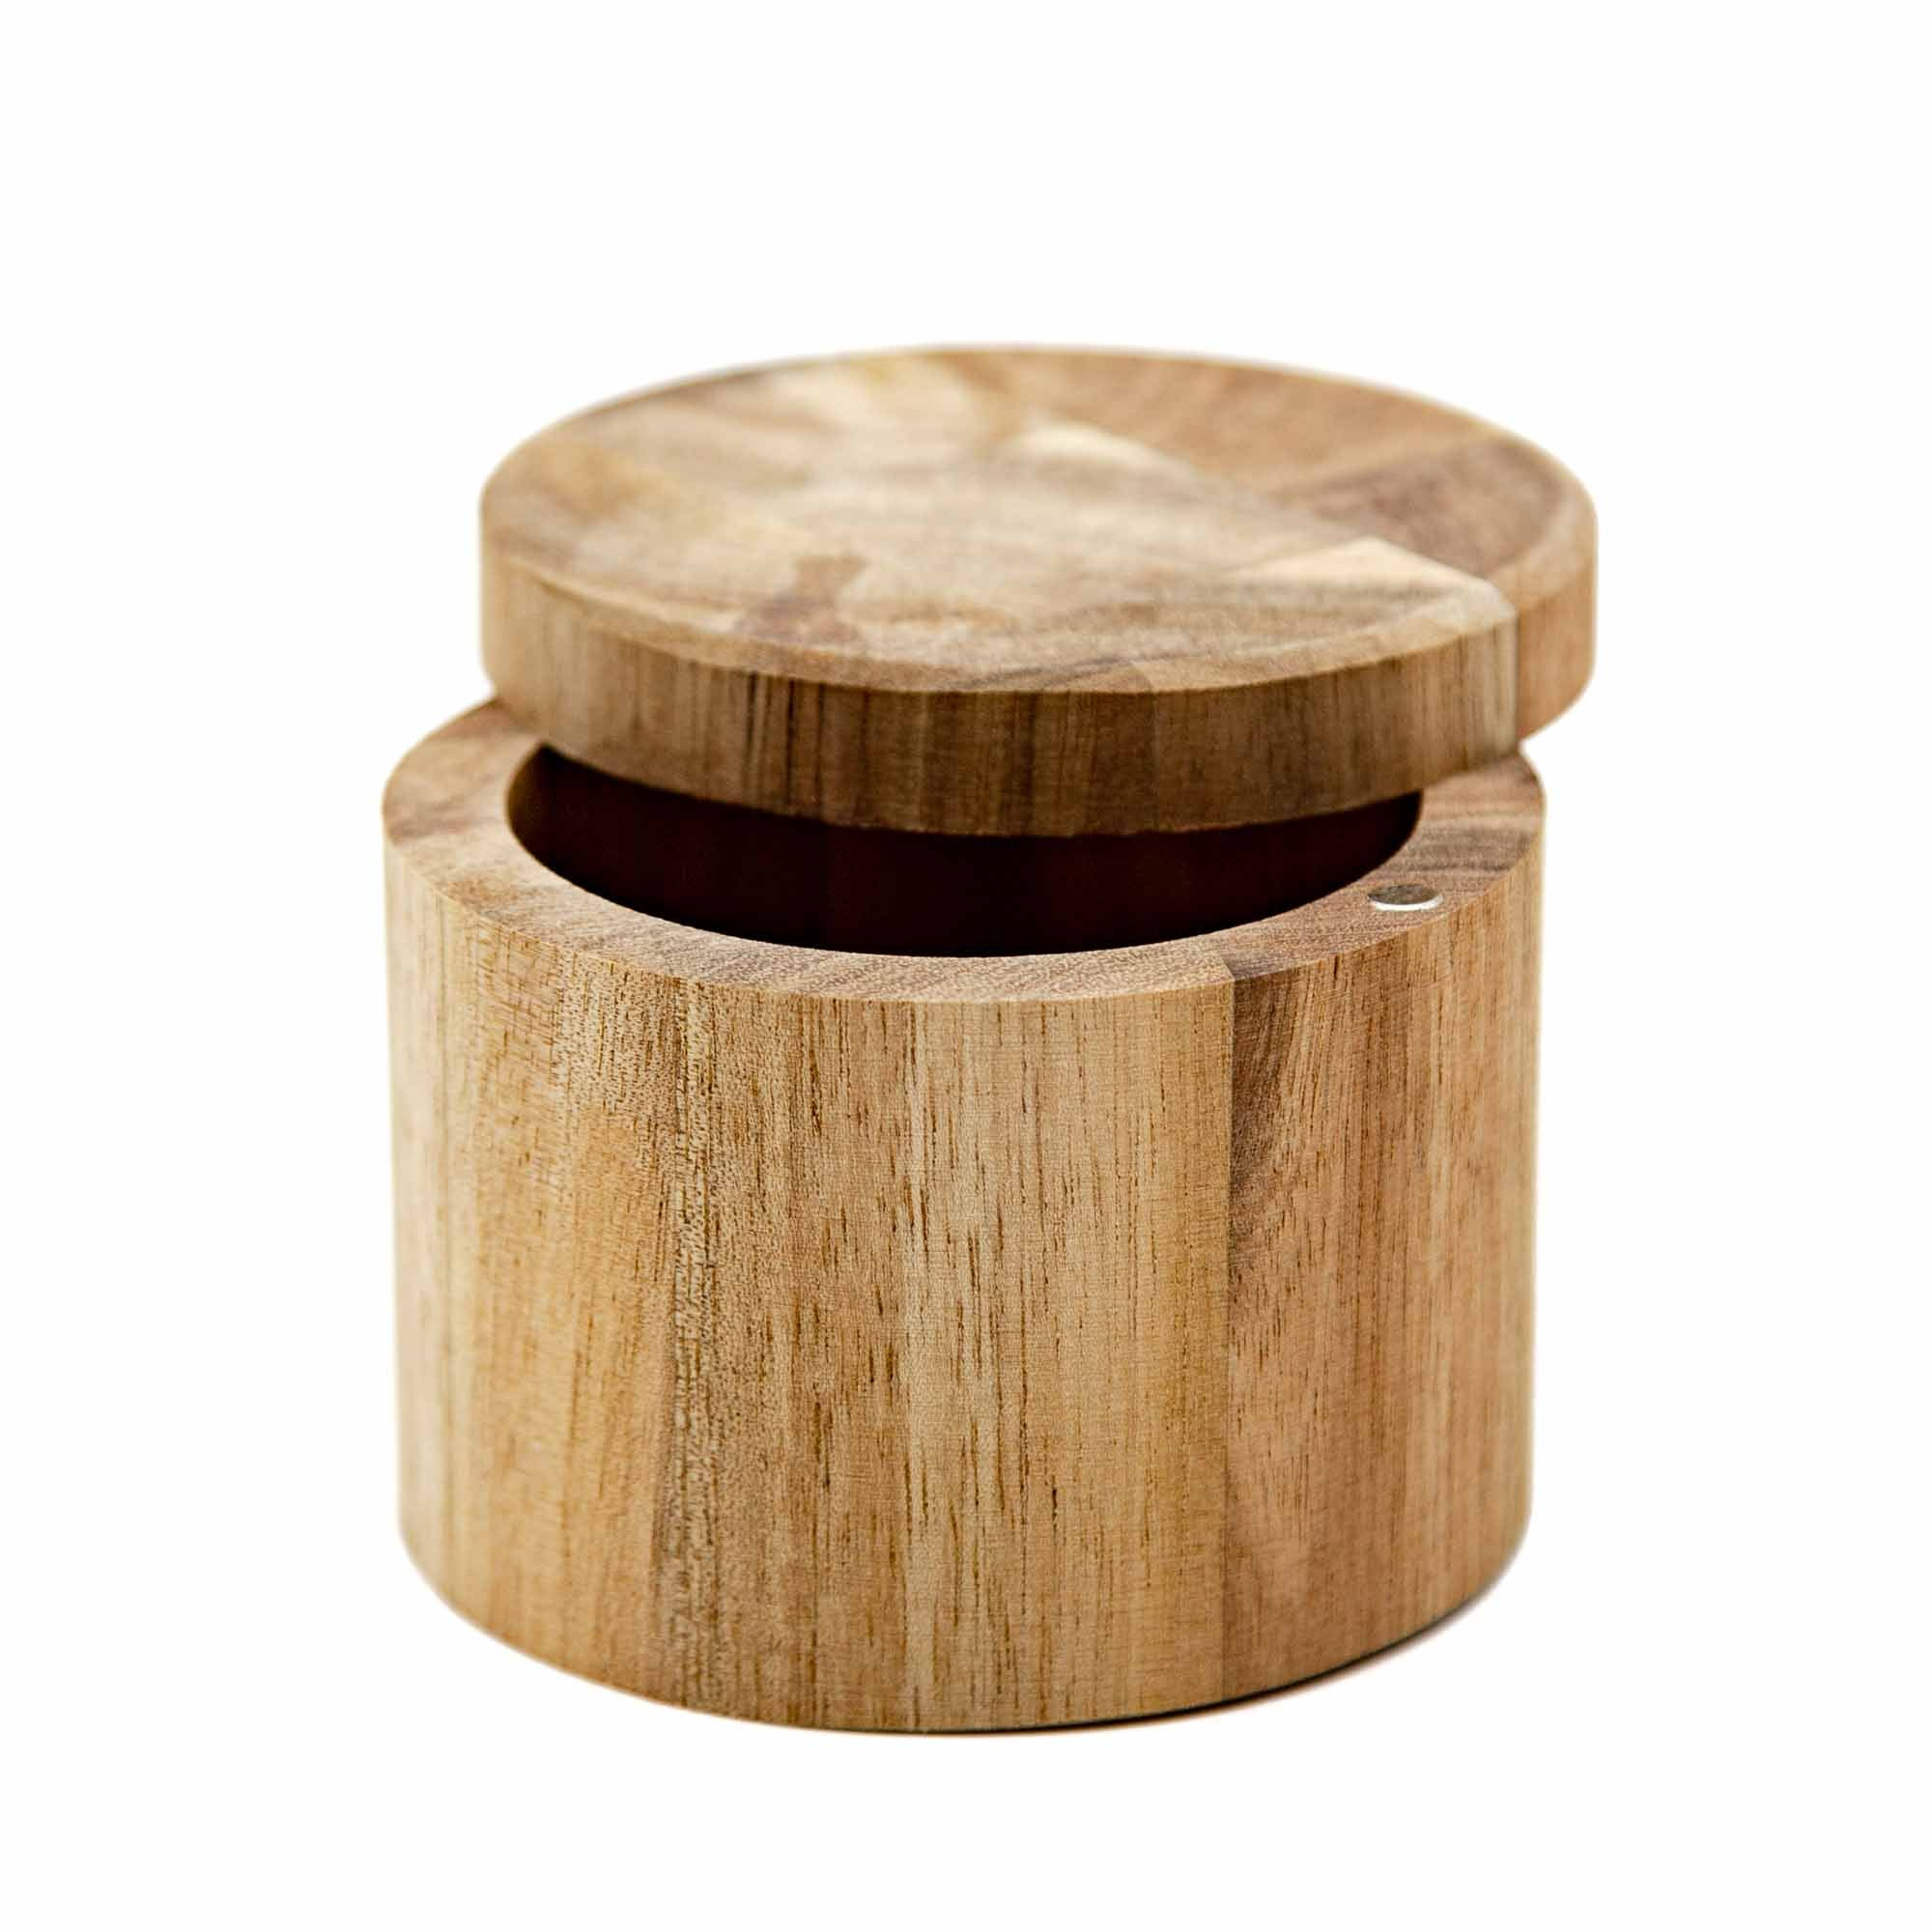 Acacia Swivel-Lid Salt Cellar - Mortise And Tenon